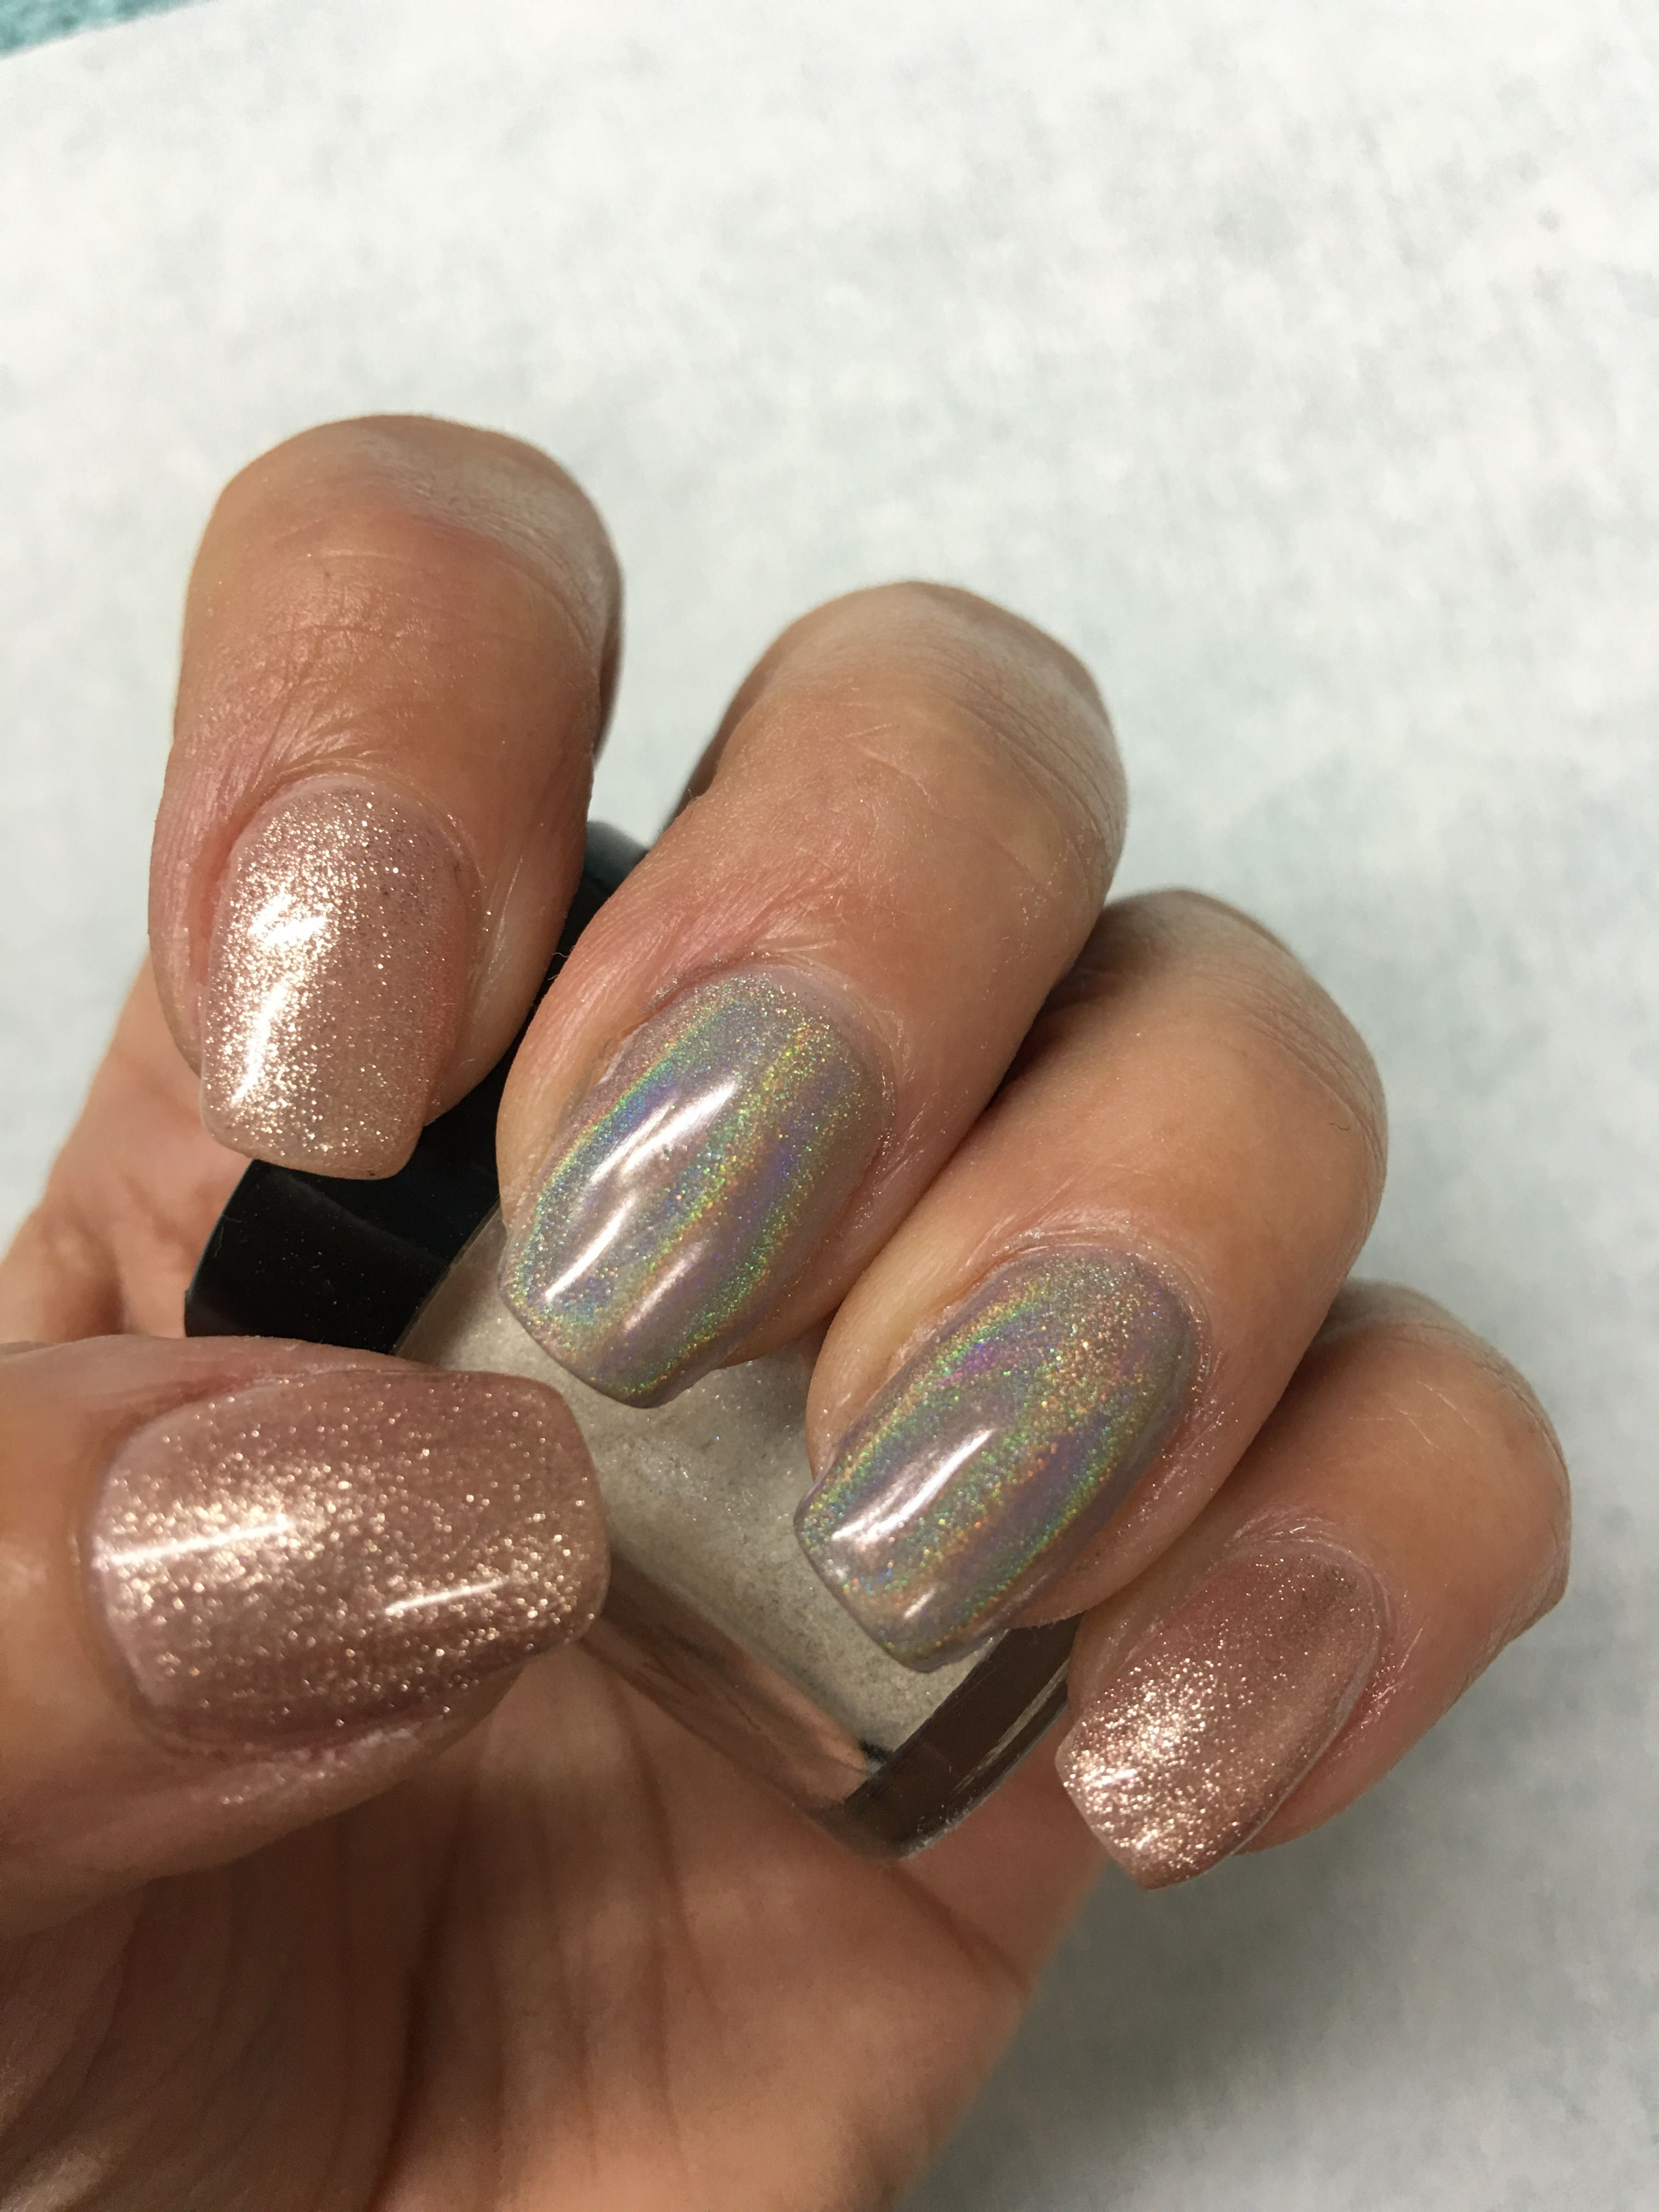 Holo Chrome Unicorn Natural Nude Shimmer Gel Nails Gel Nail